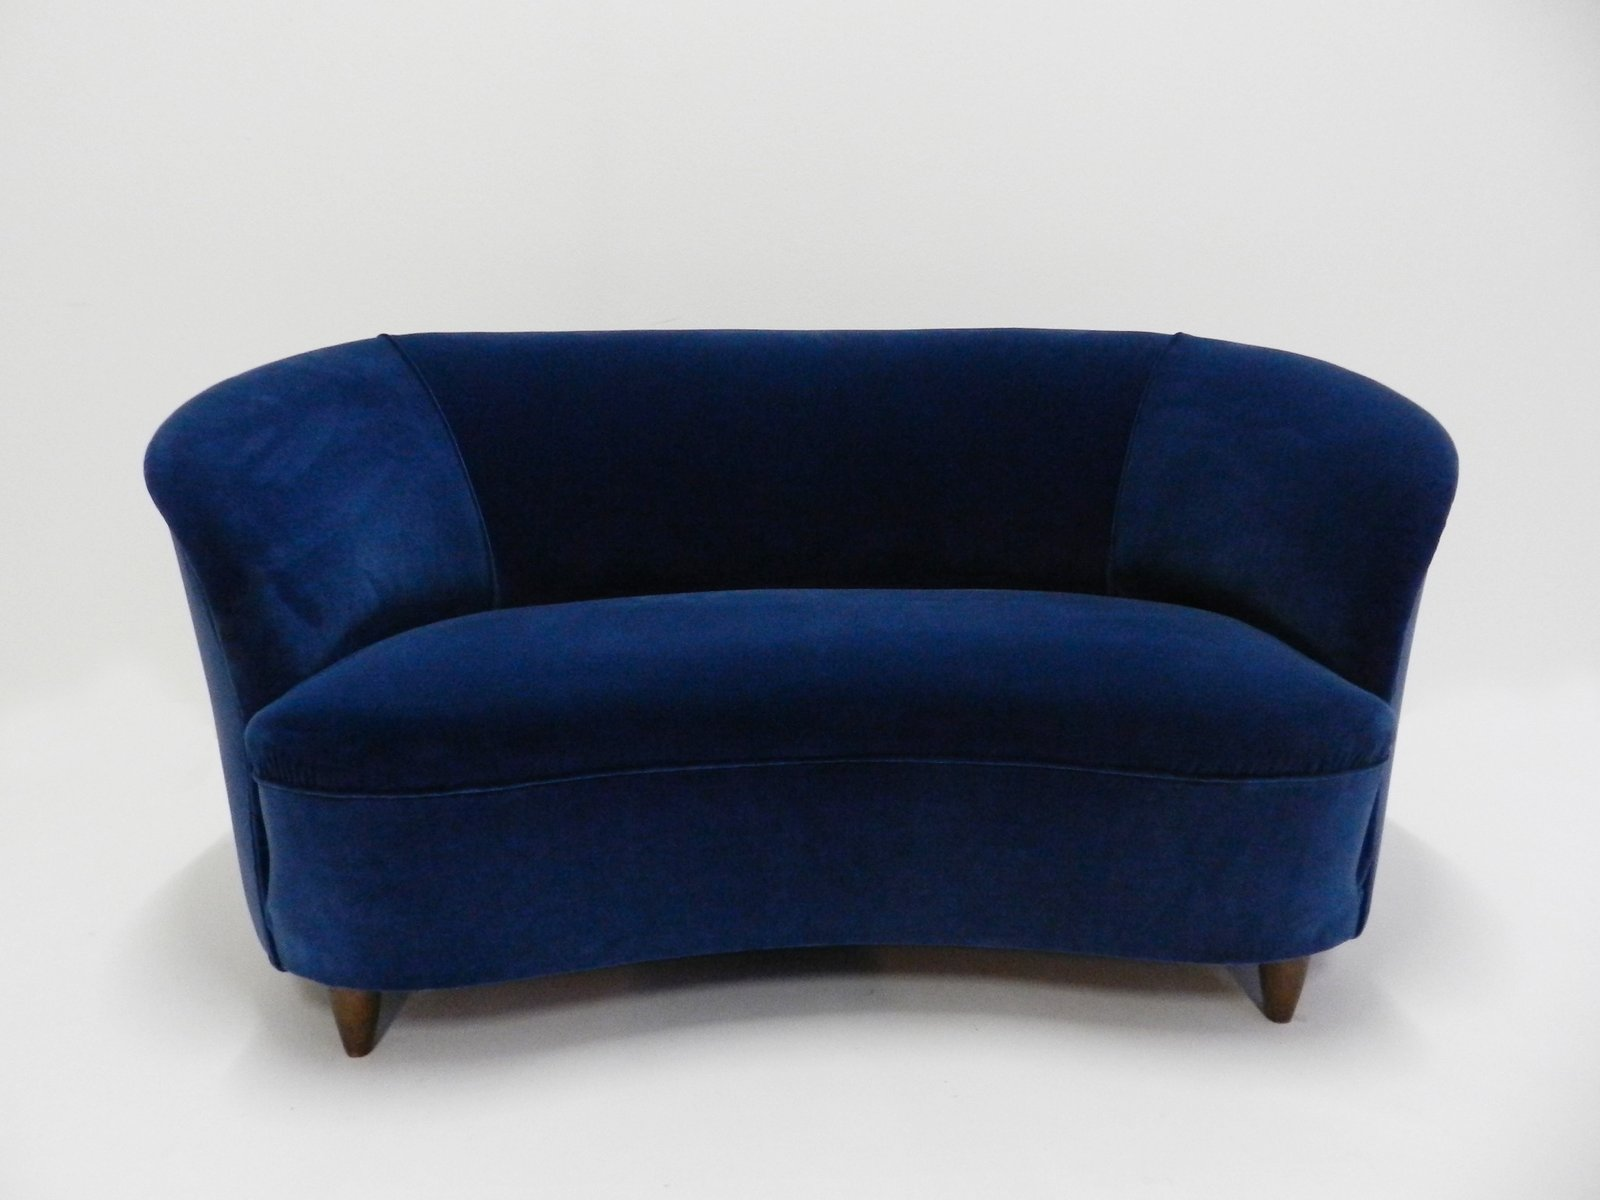 Italian Mid Century Blue Velvet Curved Loveseat For Sale At Pamono